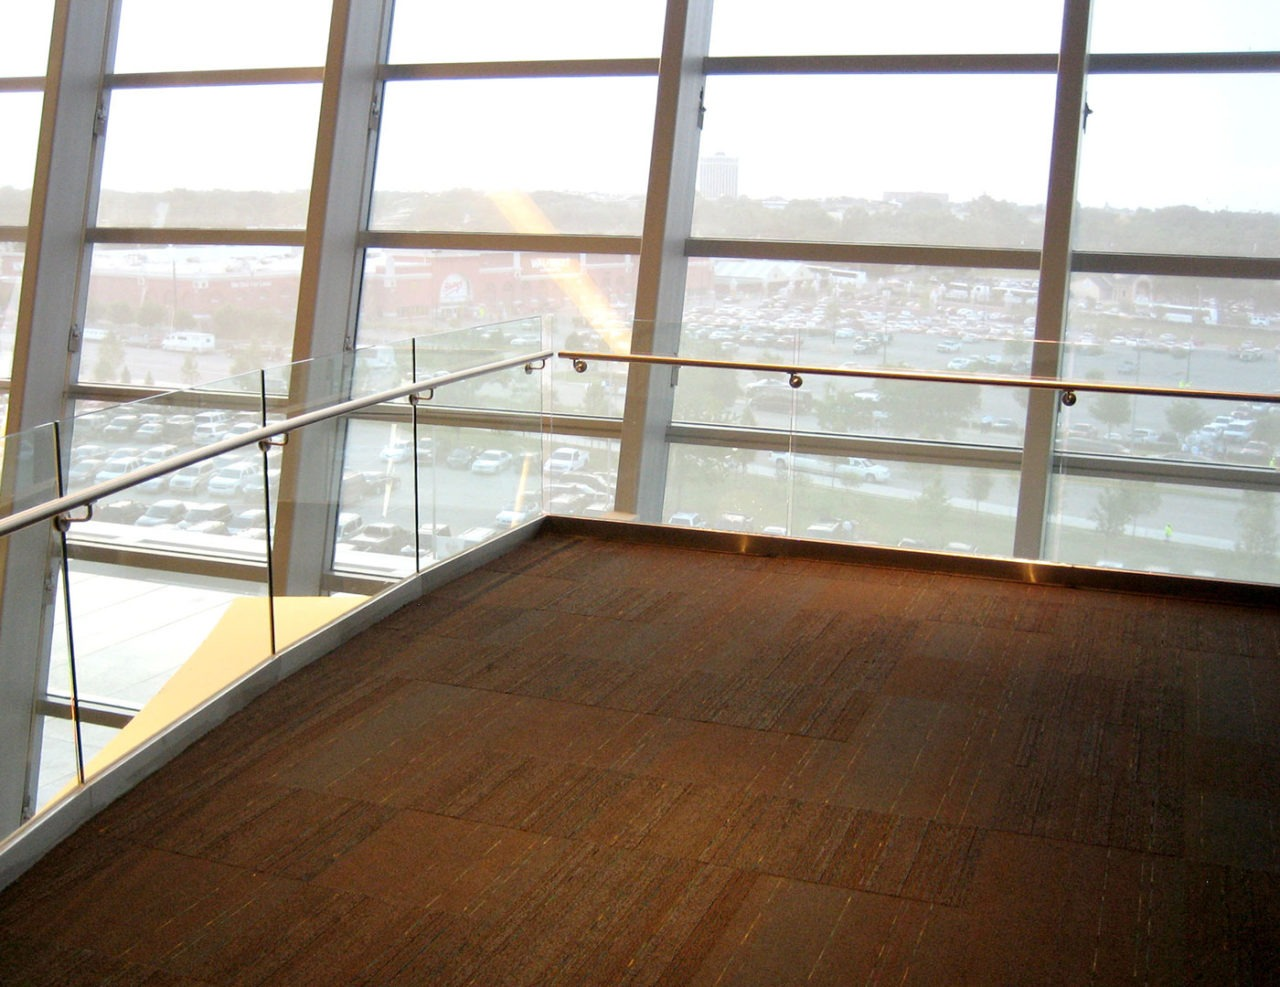 Track Rails on balcony overlooks at Cowboys Stadium